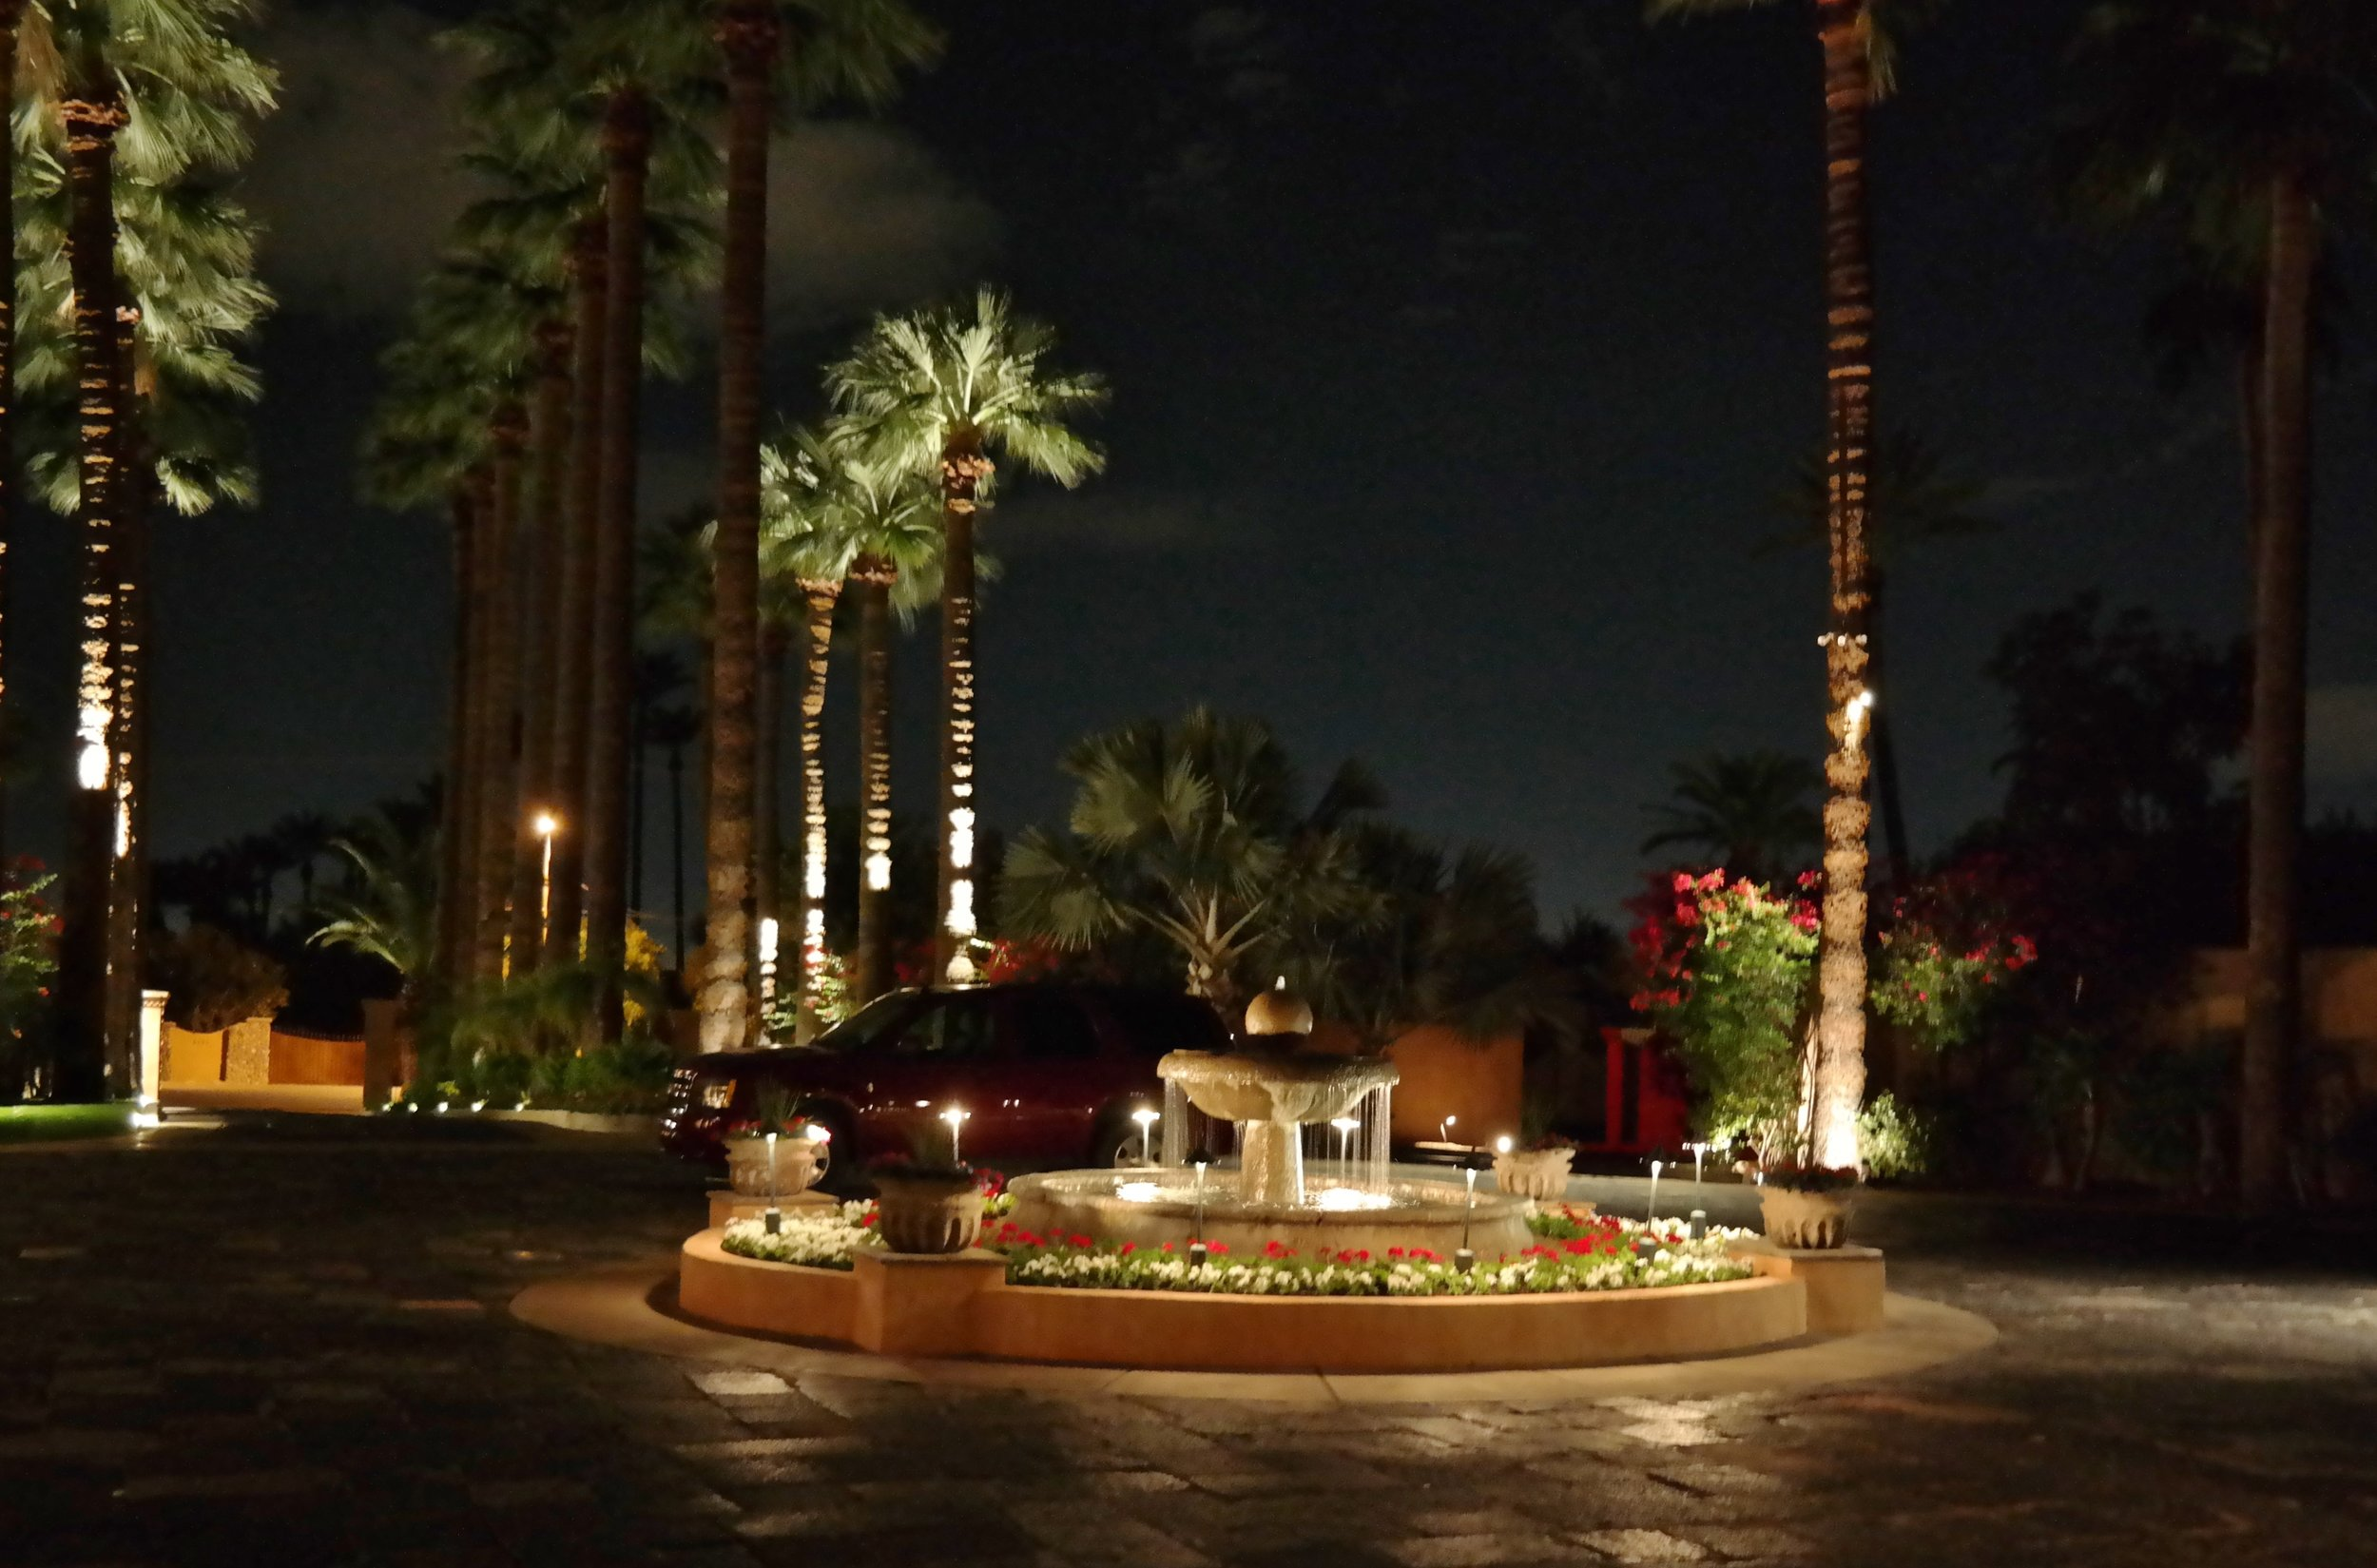 The Royal Palms Resort drive as we leave a wonderful evening